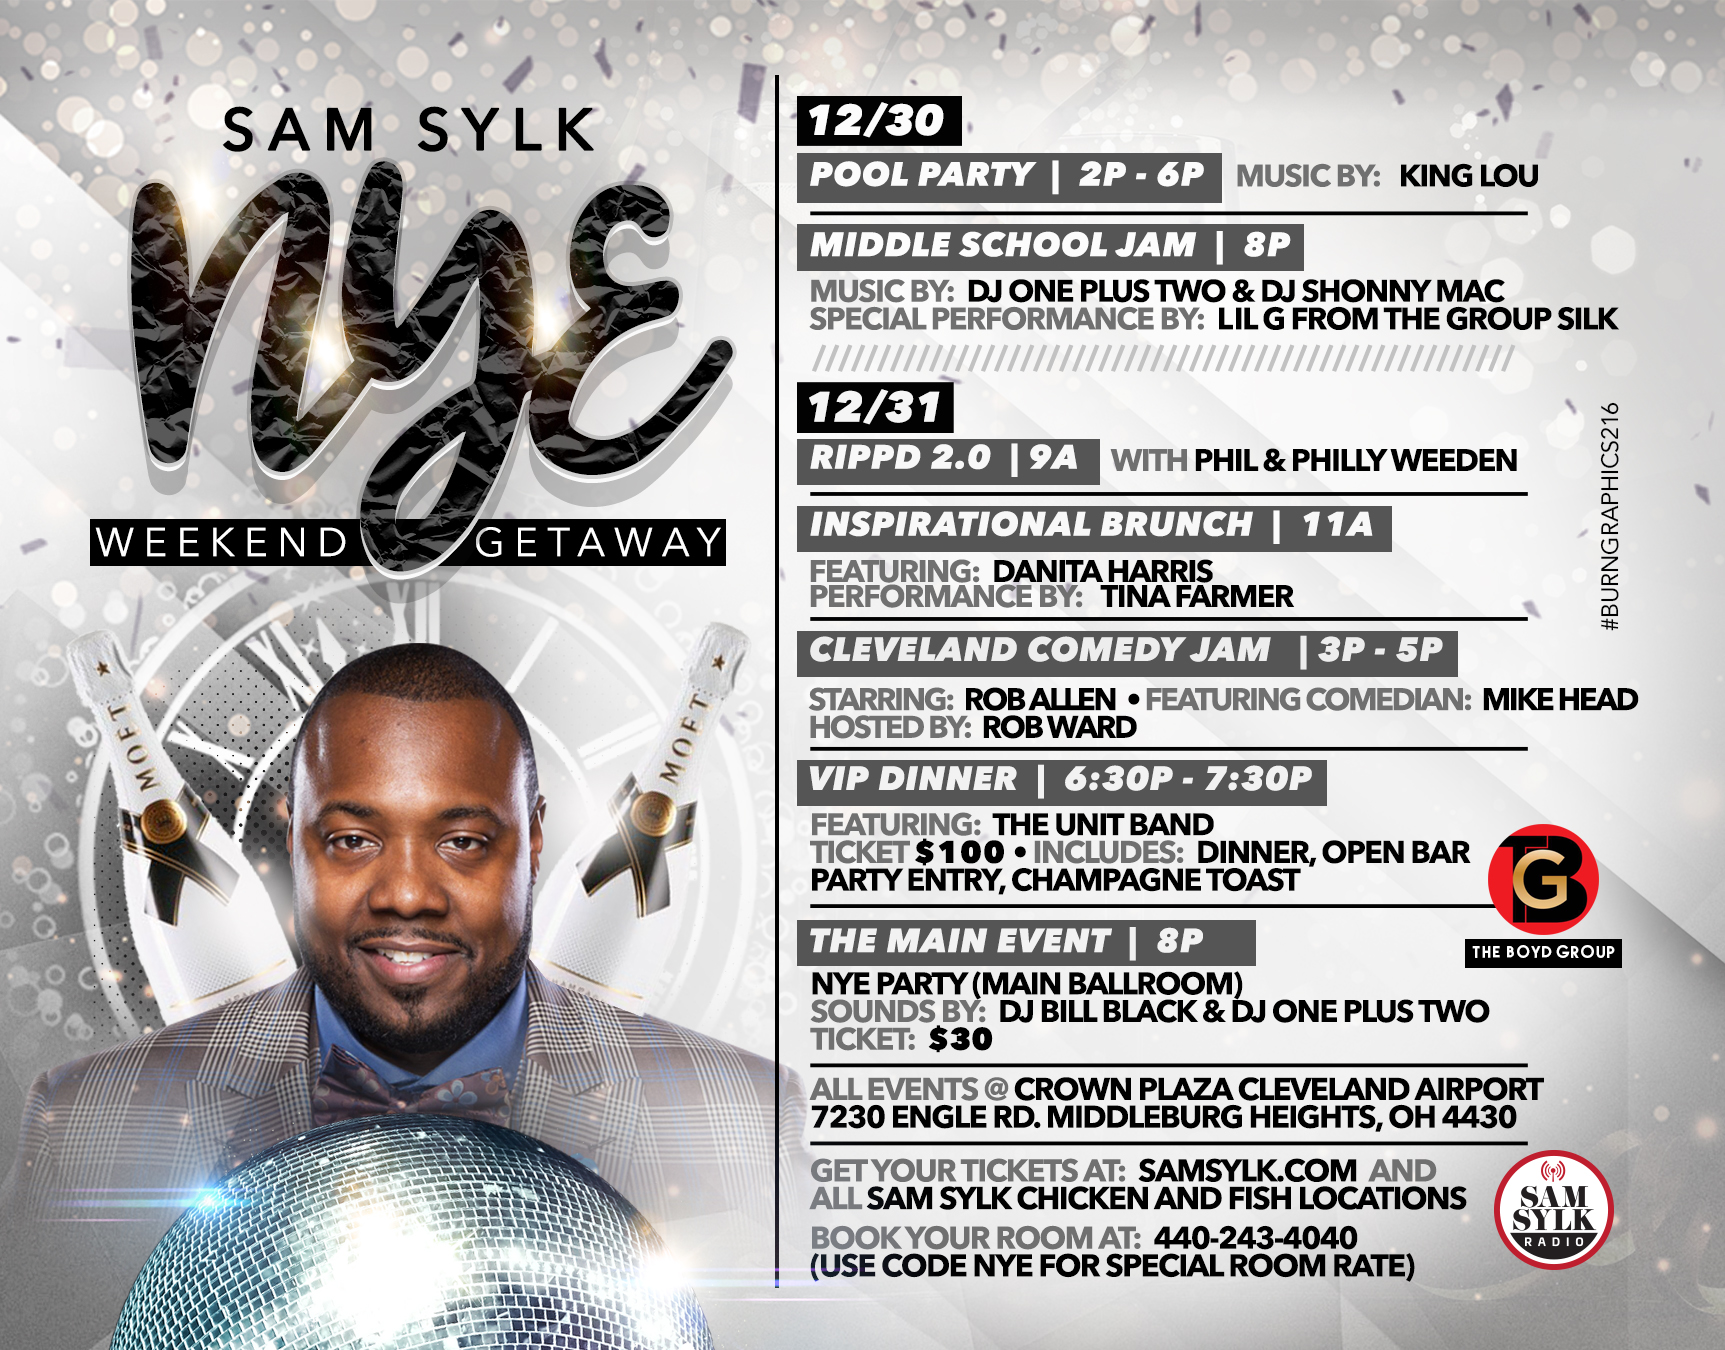 Sam Sylk NYE 2018 Weekend Getaway